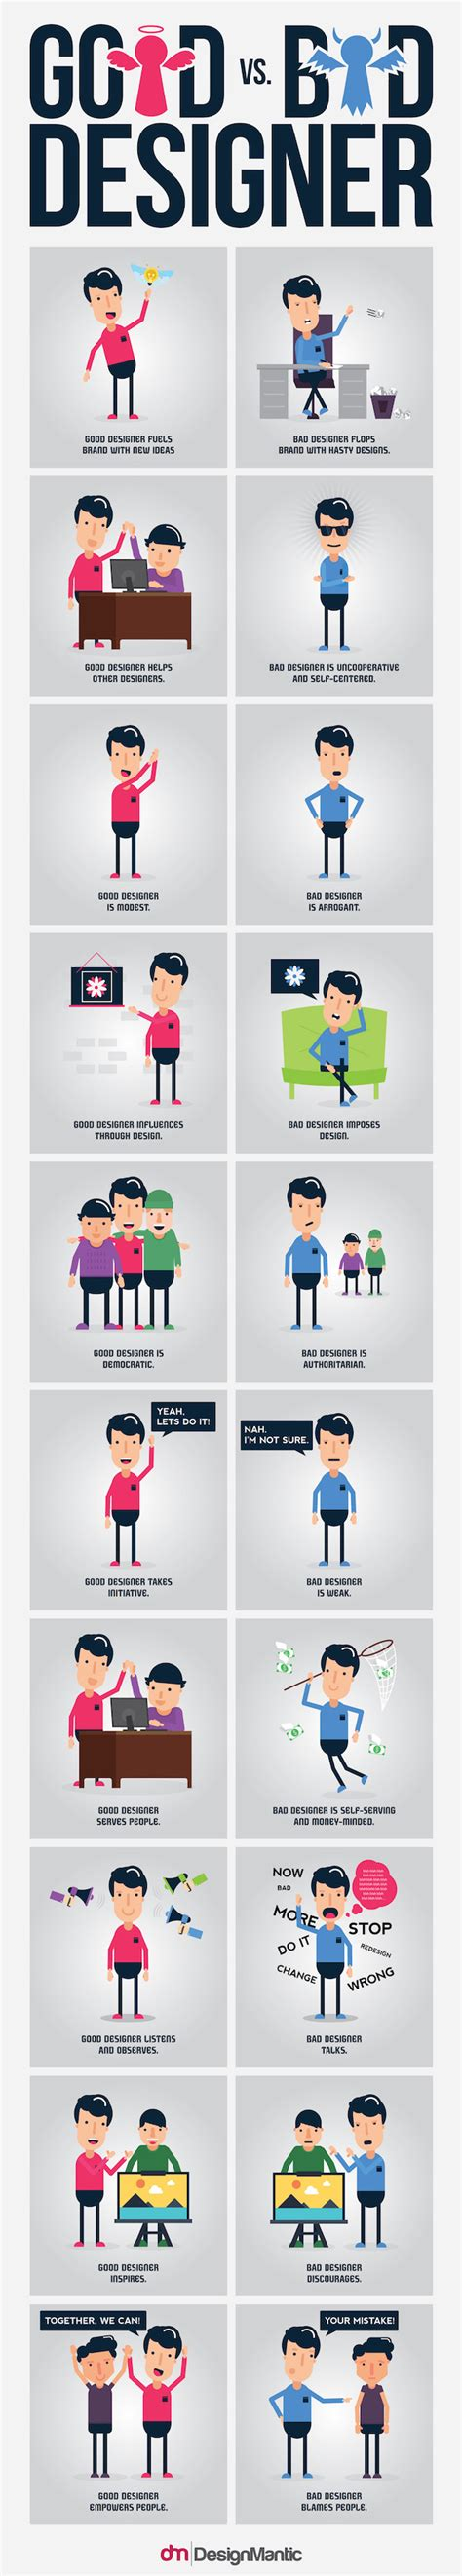 designmantic infographics infographic differences between a good and bad designer